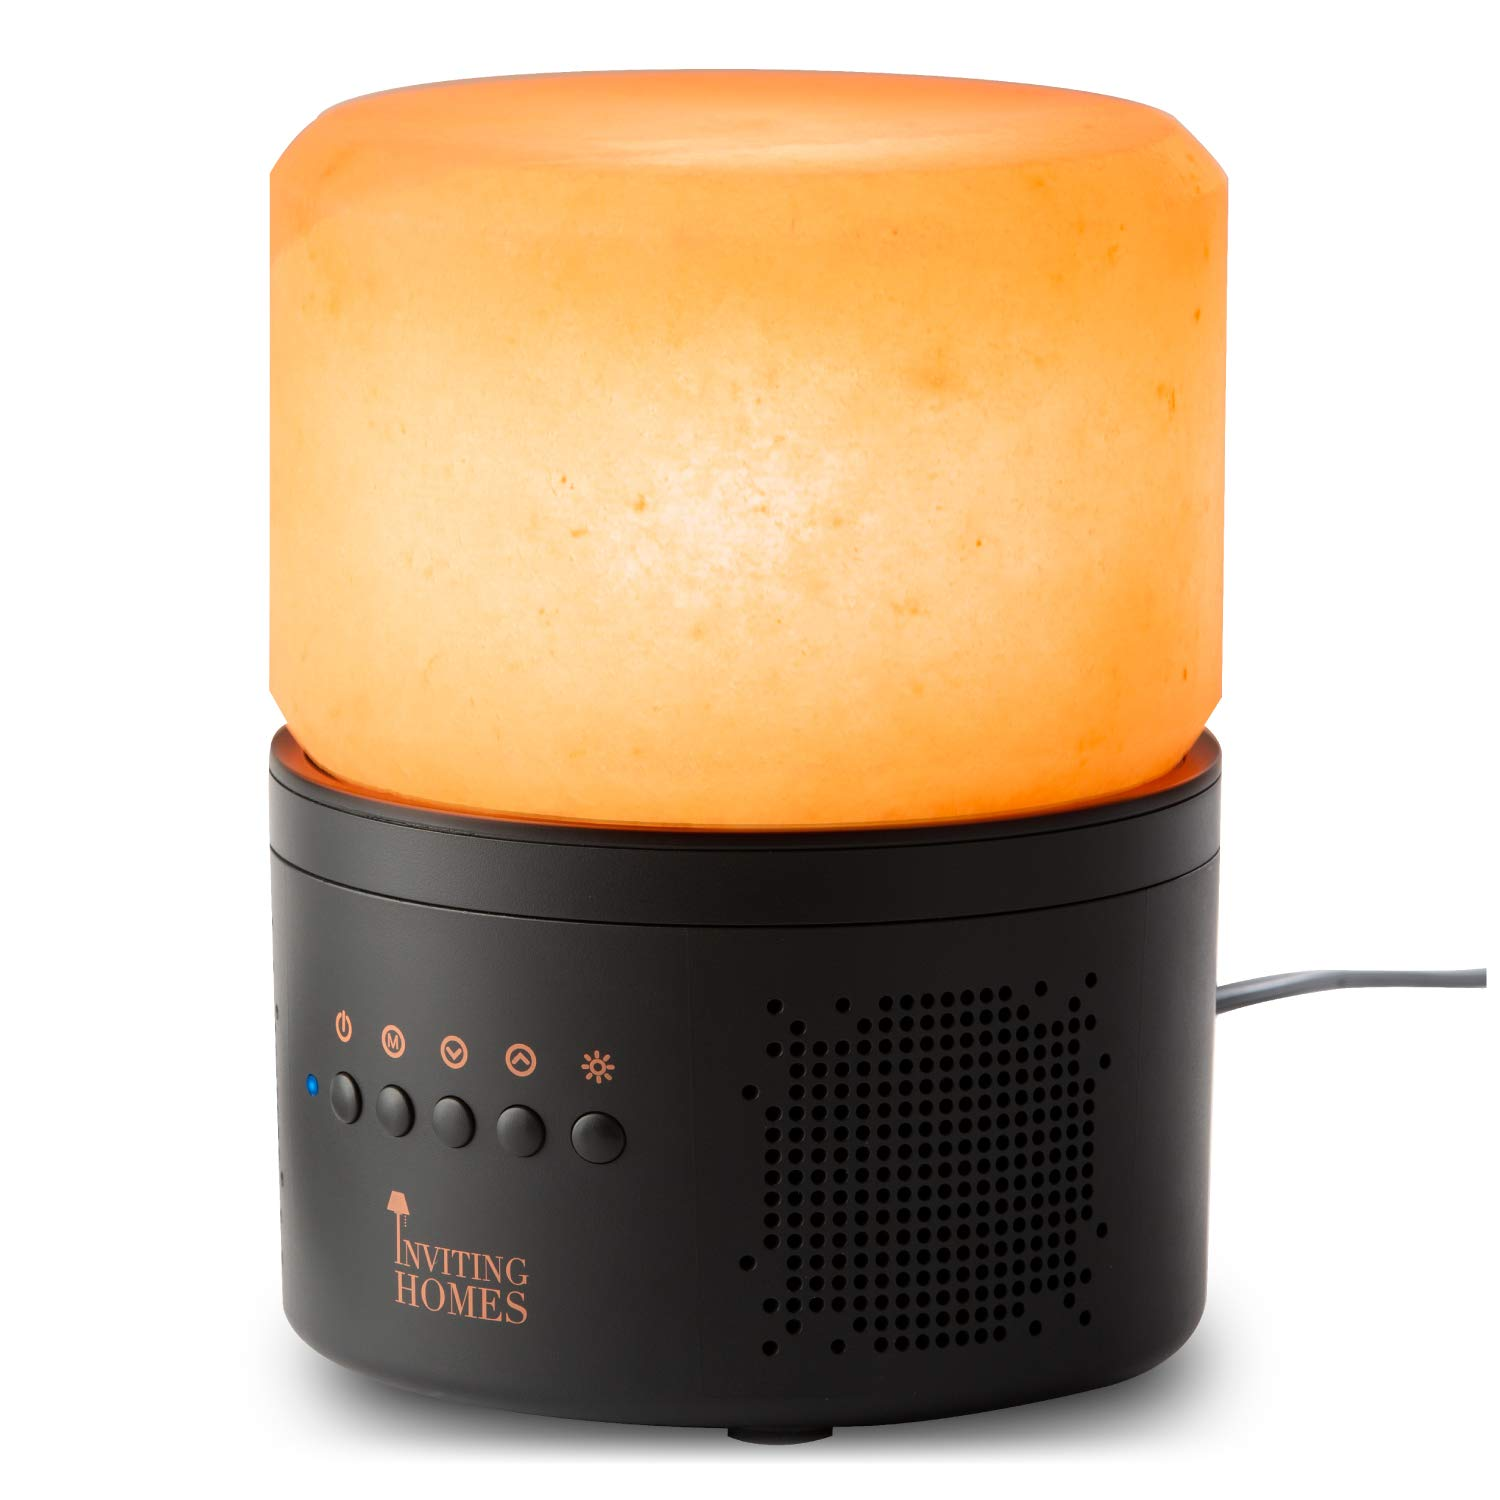 INVITING HOMES Audioglow Himalayan Salt Lamp Bluetooth Speaker – High Sound Quality – Enhanced Bass – Natural Crystal Light Creates A Calm, Soothing Atmosphere - S - Series